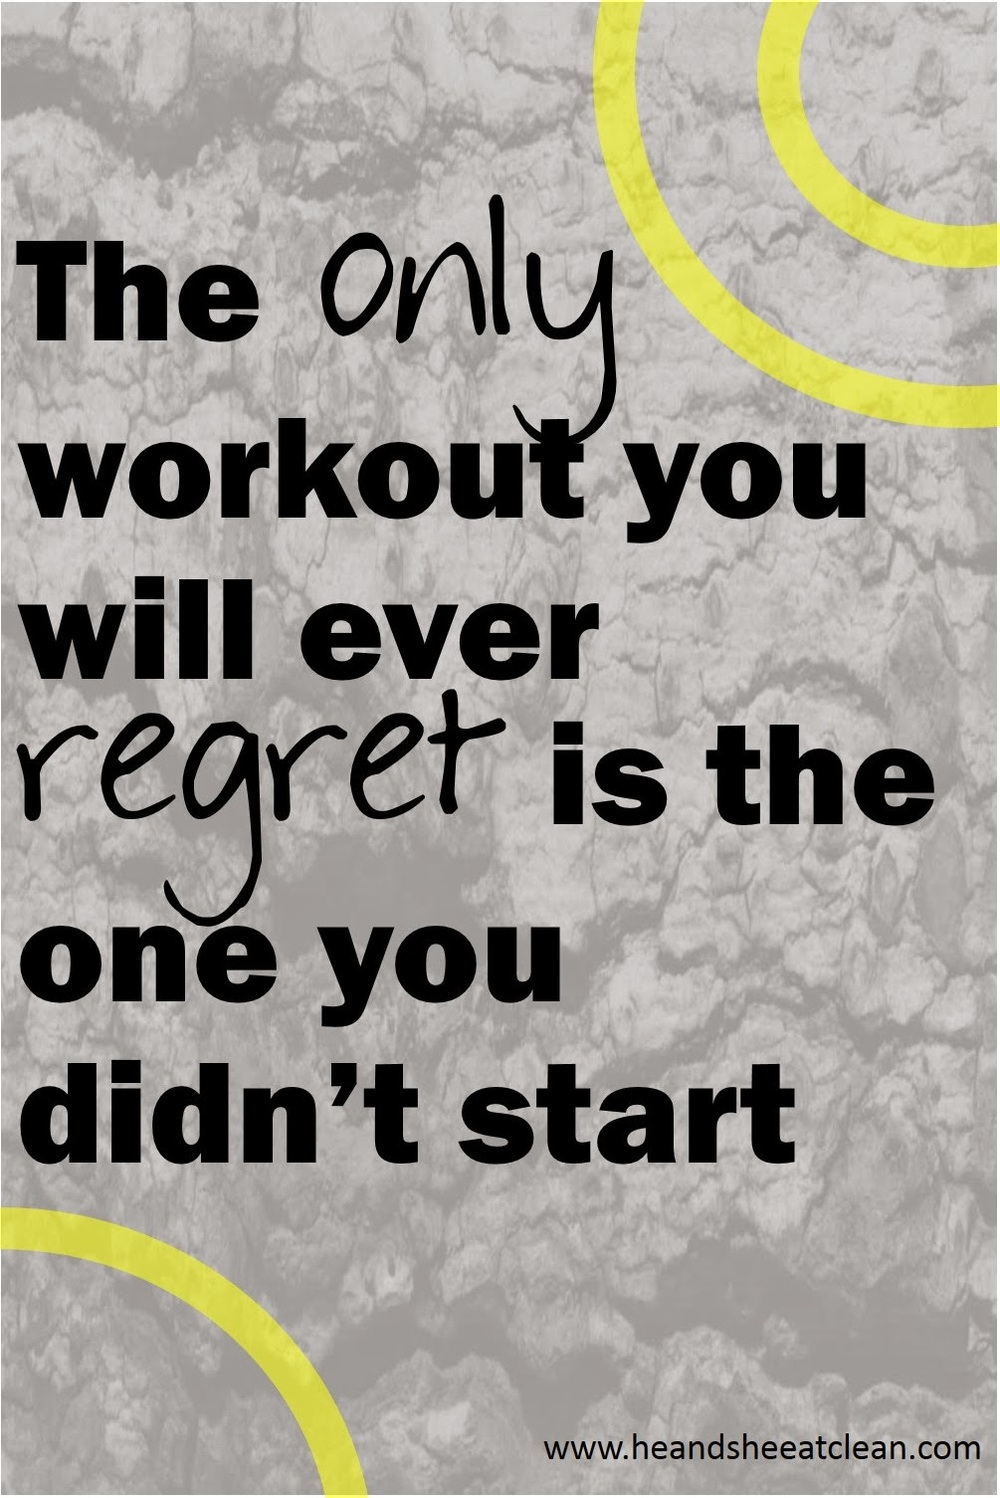 free-iPhone-background-wallpaper-encouraging-new-year-new-you-make-a-change-workout-fitness-resolution-regret-gym-he-she-eat-clean.jpg